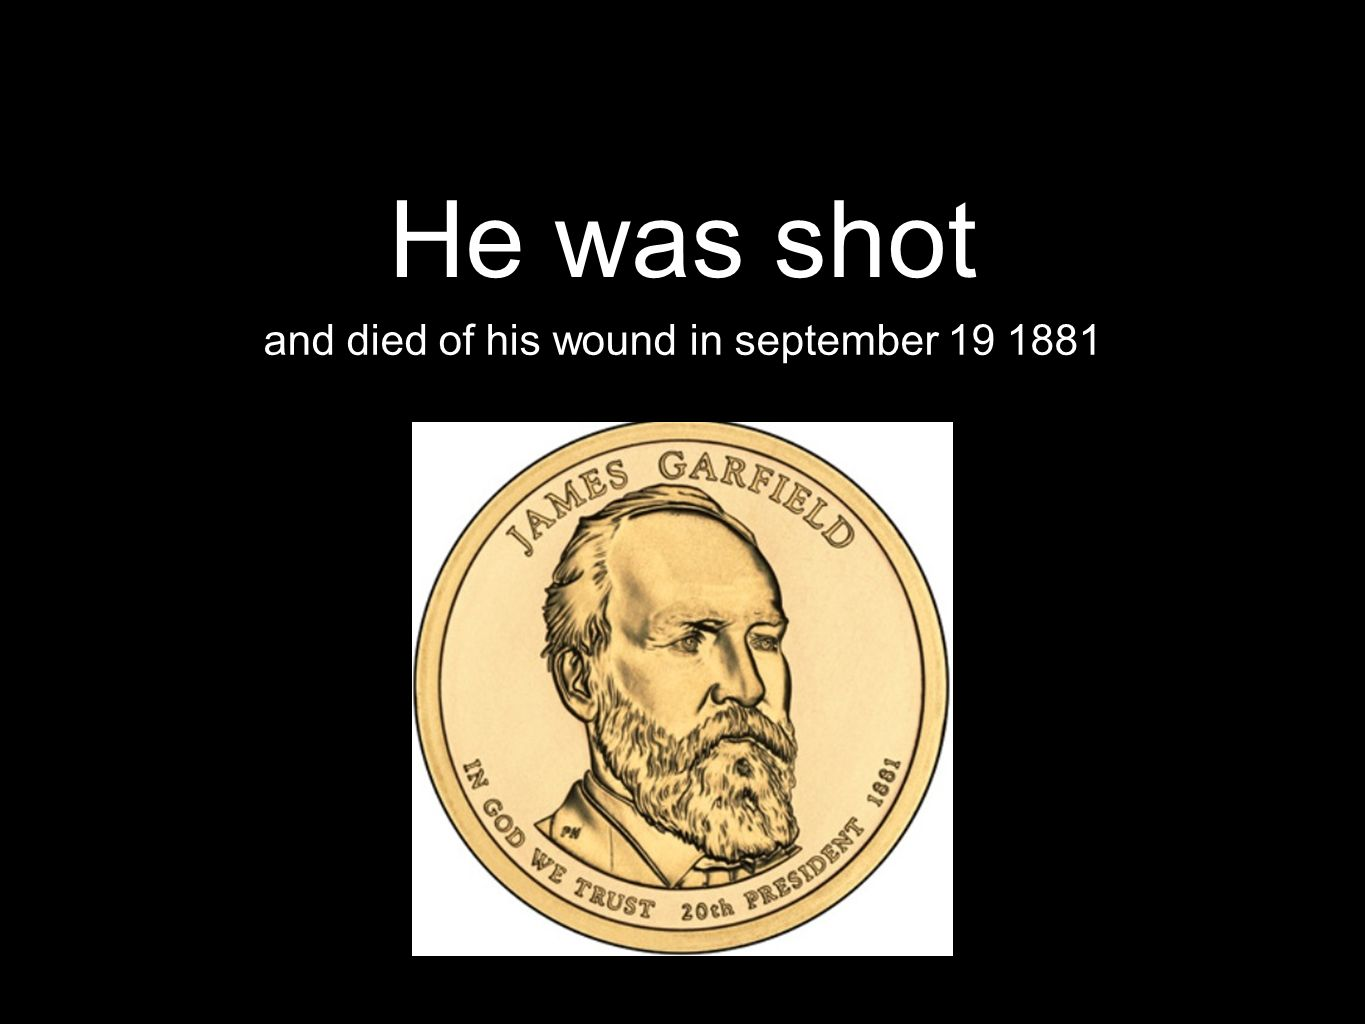 He was shot and died of his wound in september 19 1881